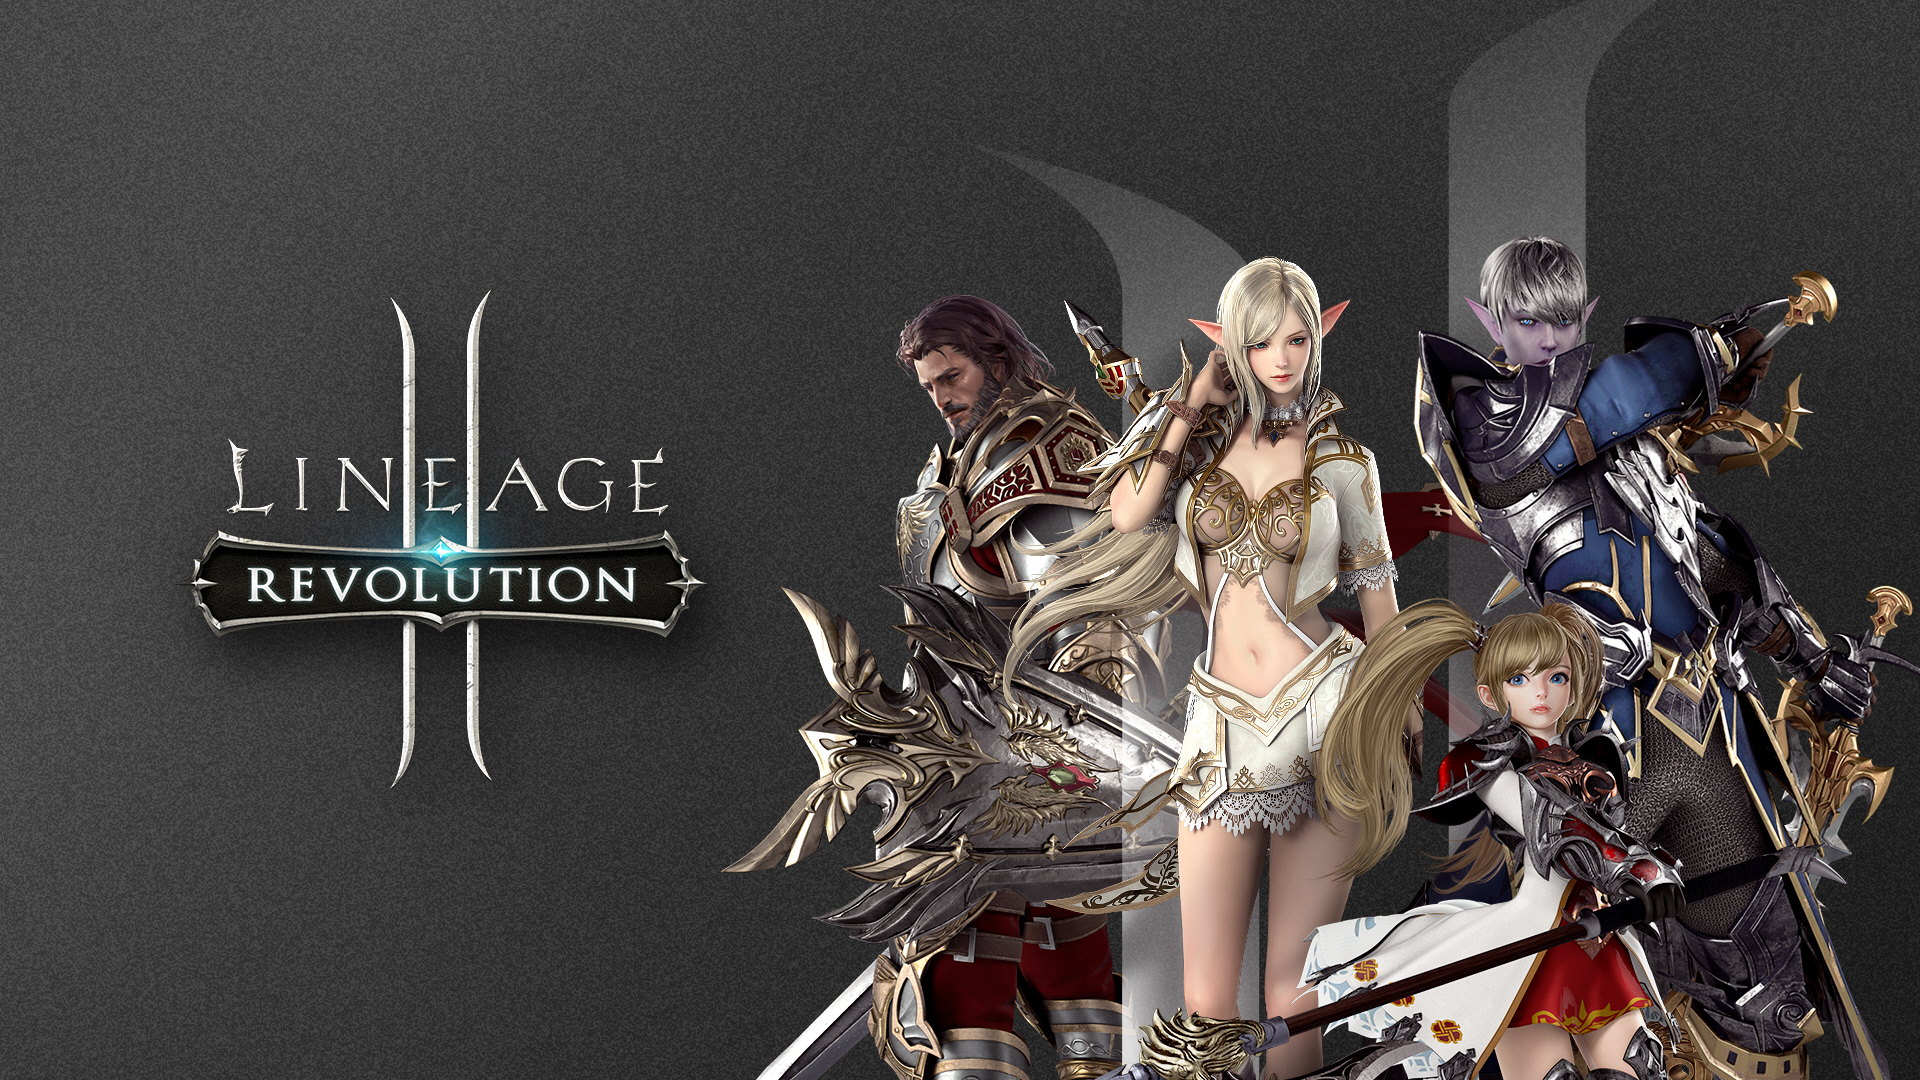 A Lineage 2: Revolution update brings Professions and Crafting to the popular MMORPG